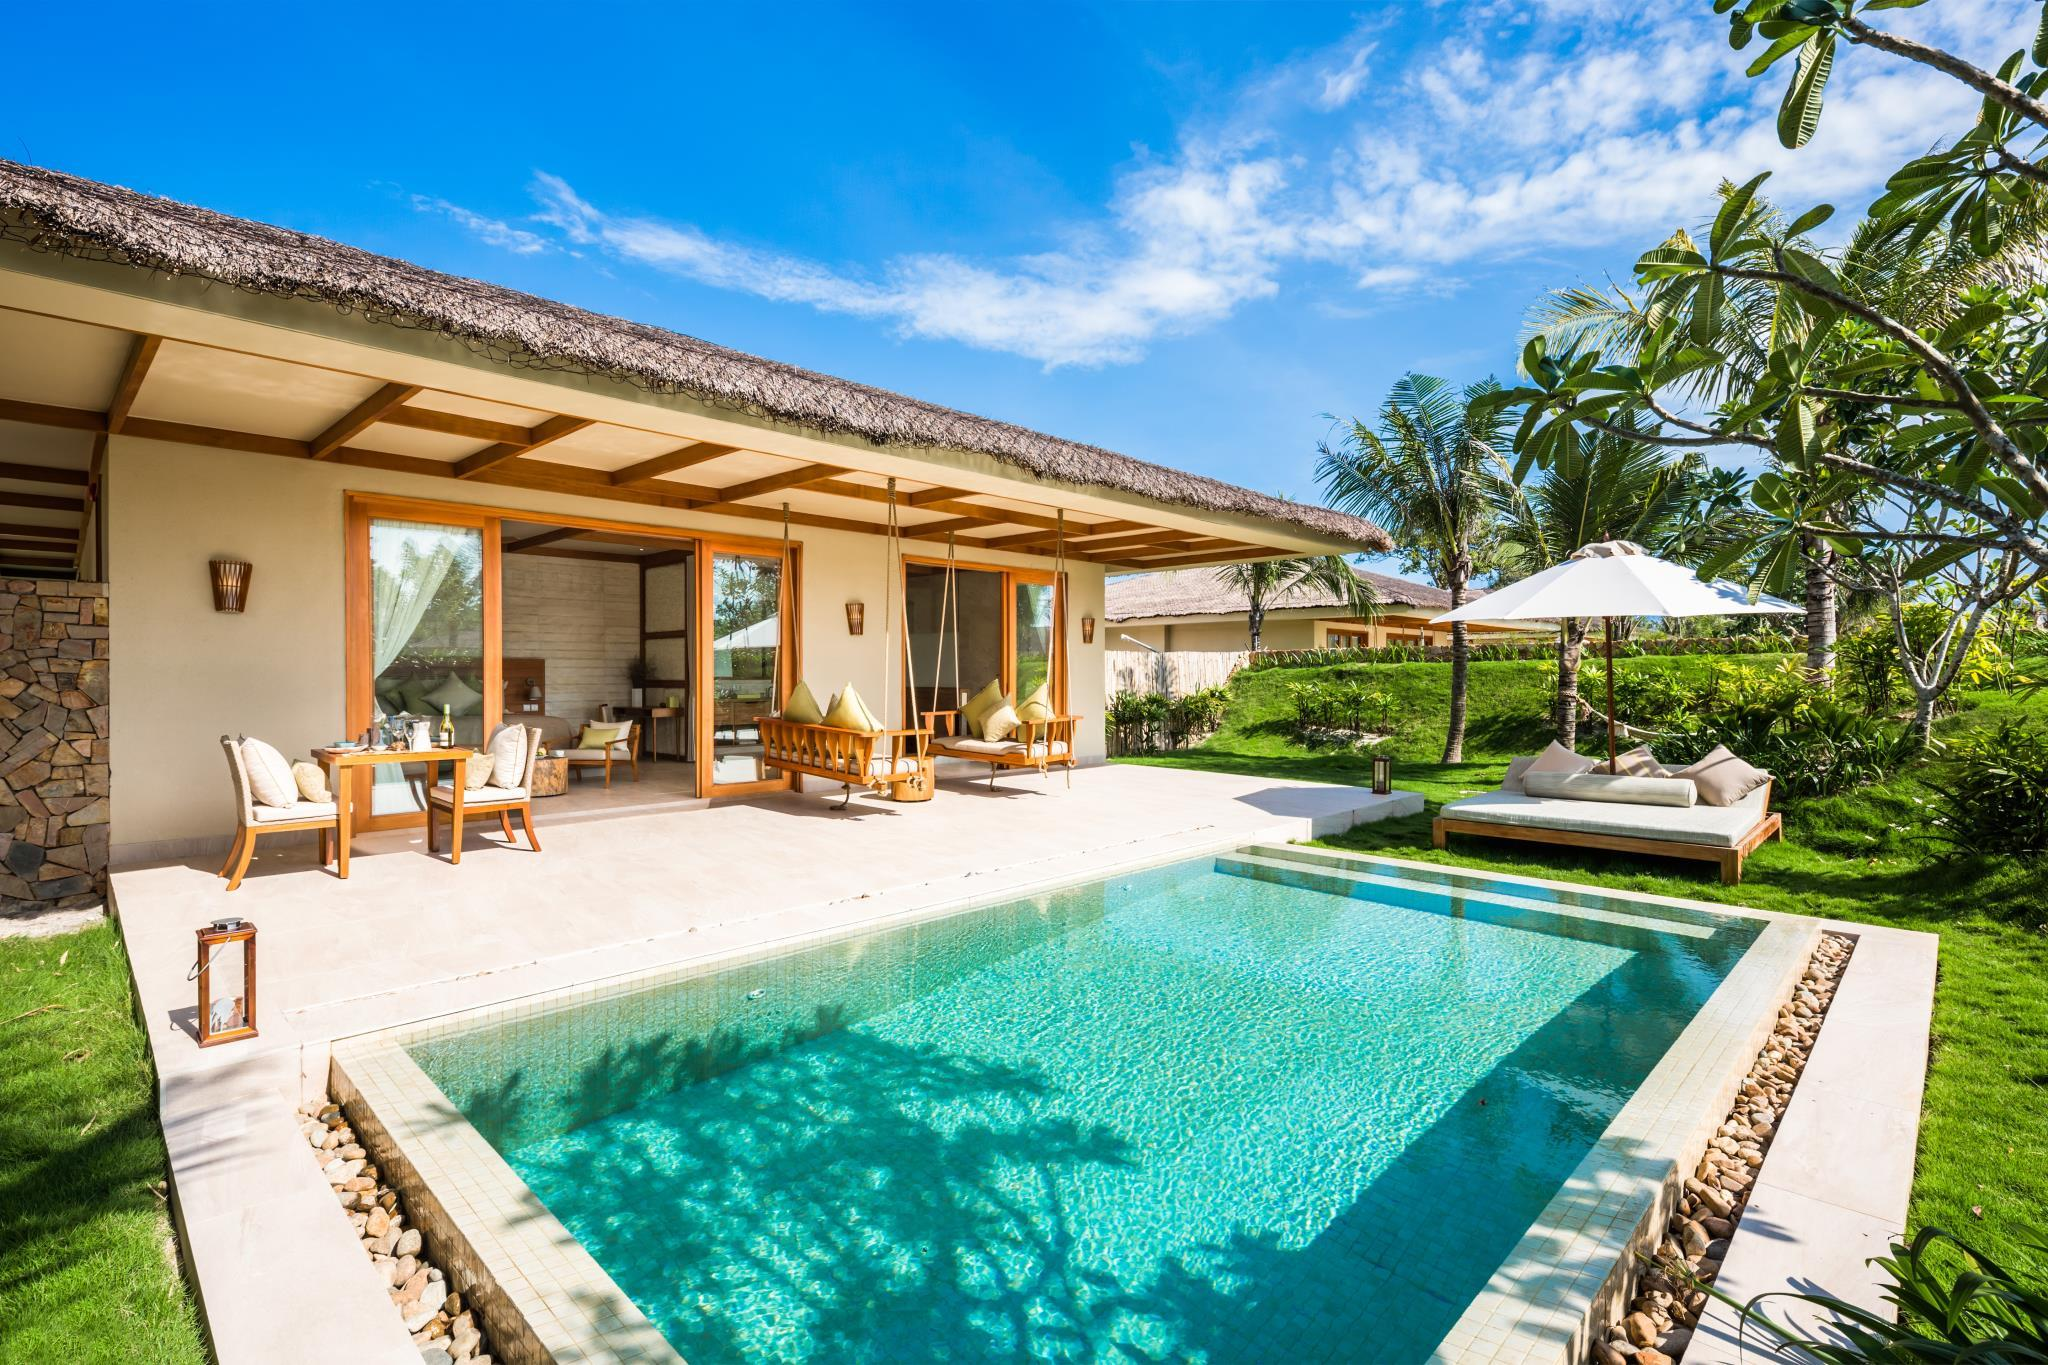 1-Bedroom Villa with Pool - All Spa treatment included